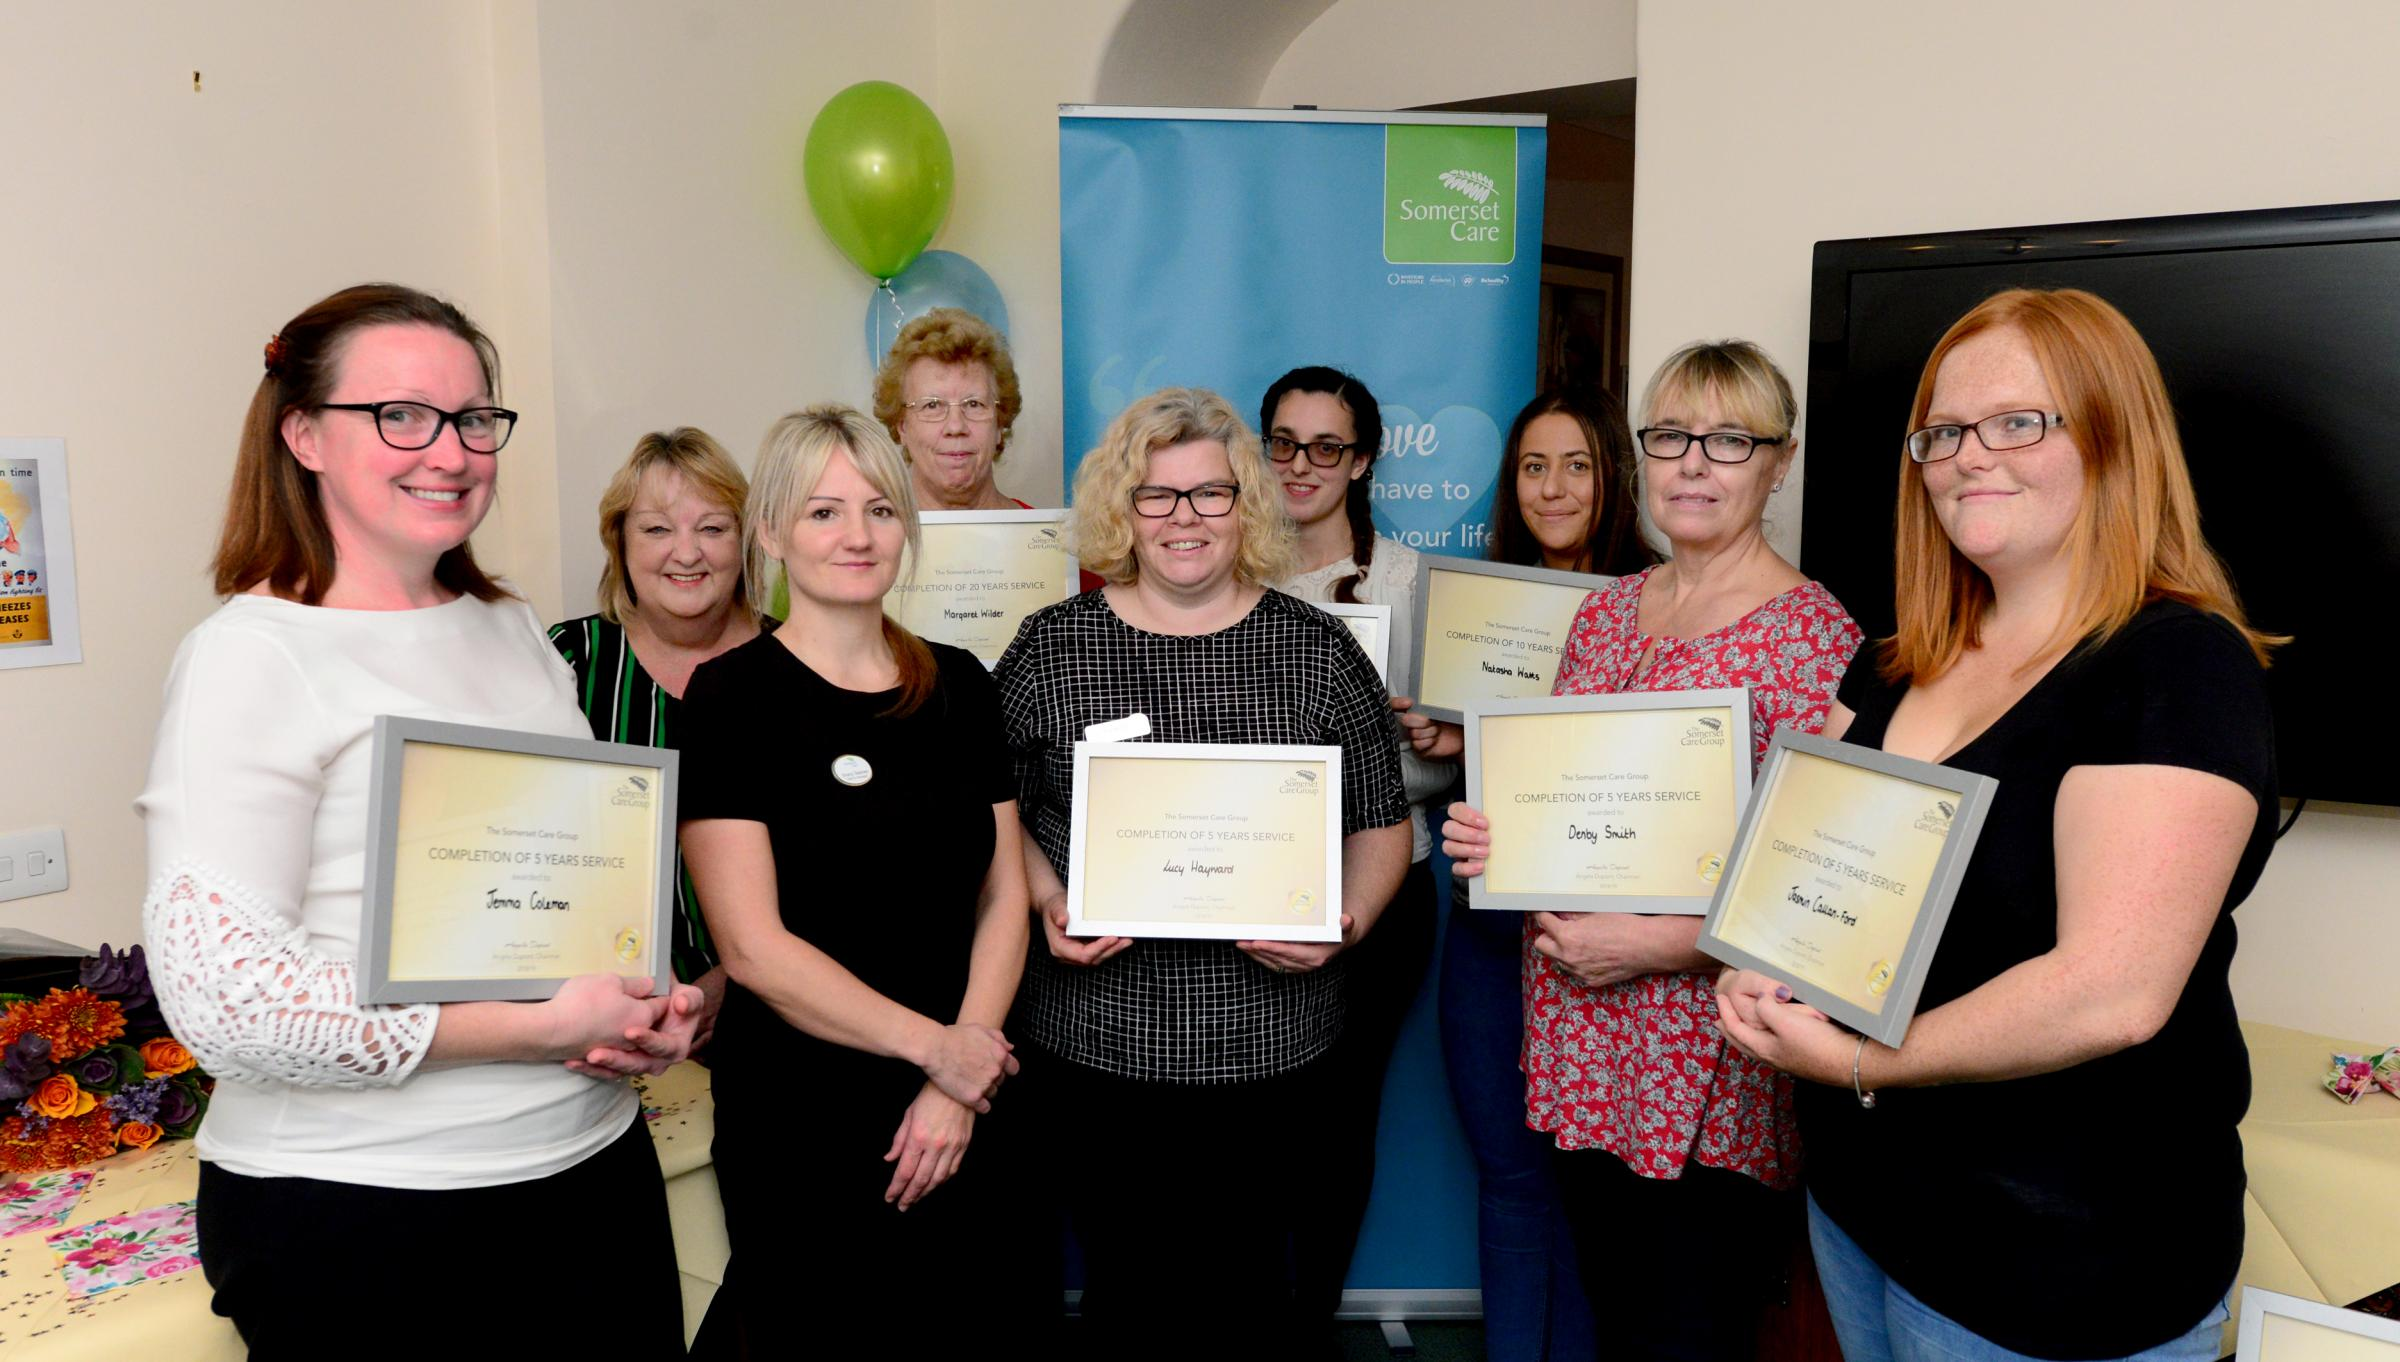 Bembridge - Staff at Inver House with their long service awards. Left, Jemma Coleman (five years), operations manager Diane Allen, Sheryl Beebee, Margaret Wilder (20 years), Lucy Hayward (five years), Kimberley Haygarth (five years), Natasha Watts (10 yea